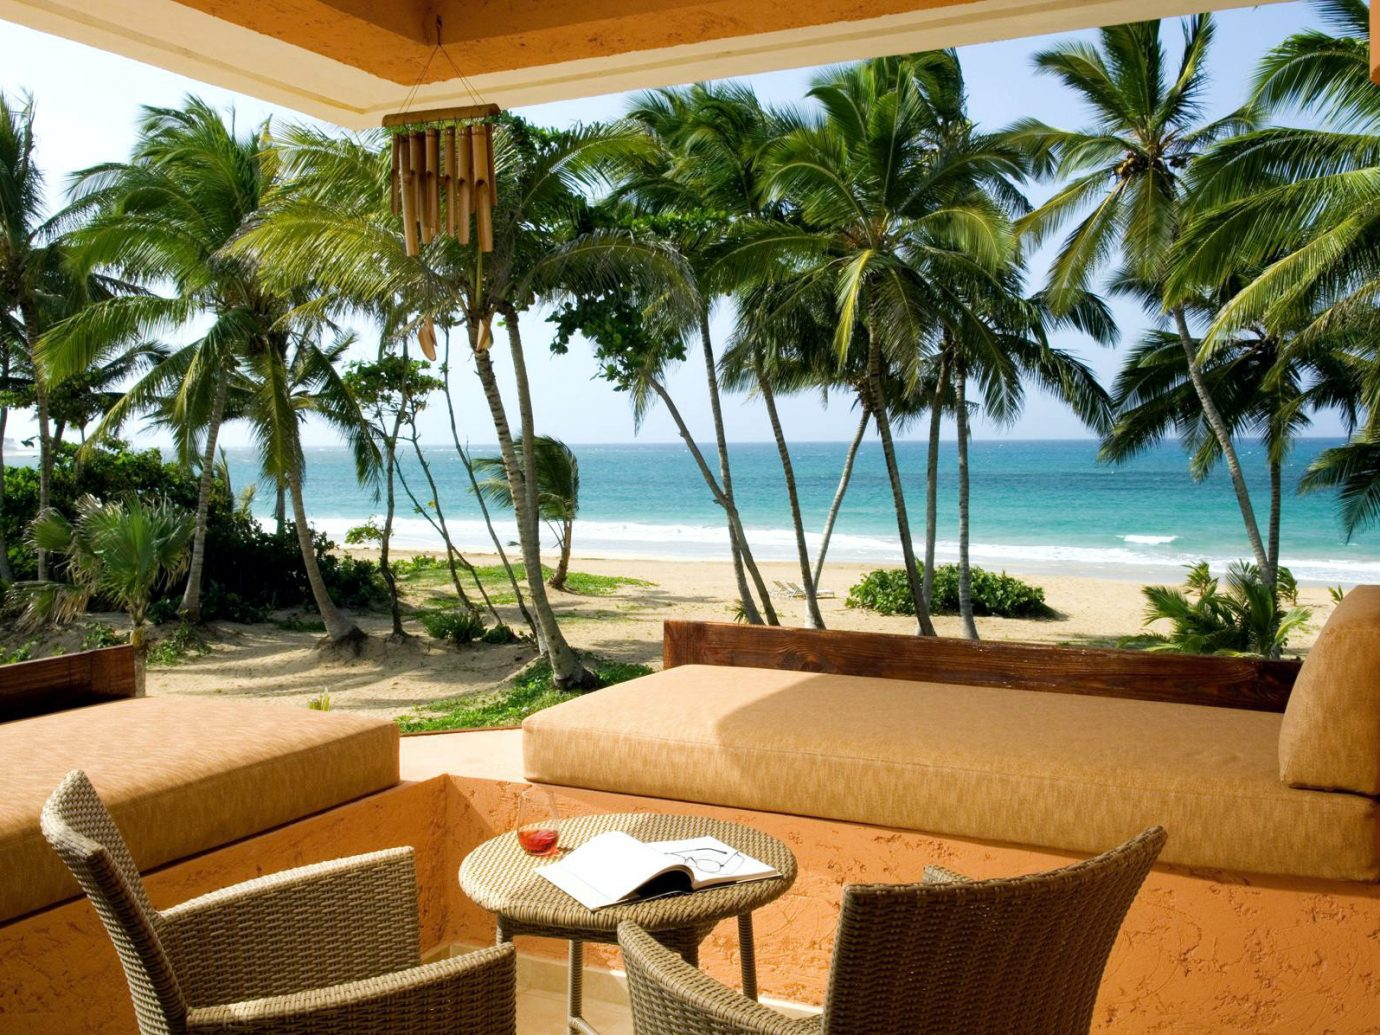 Relaxing nook overlooking the Caribbean